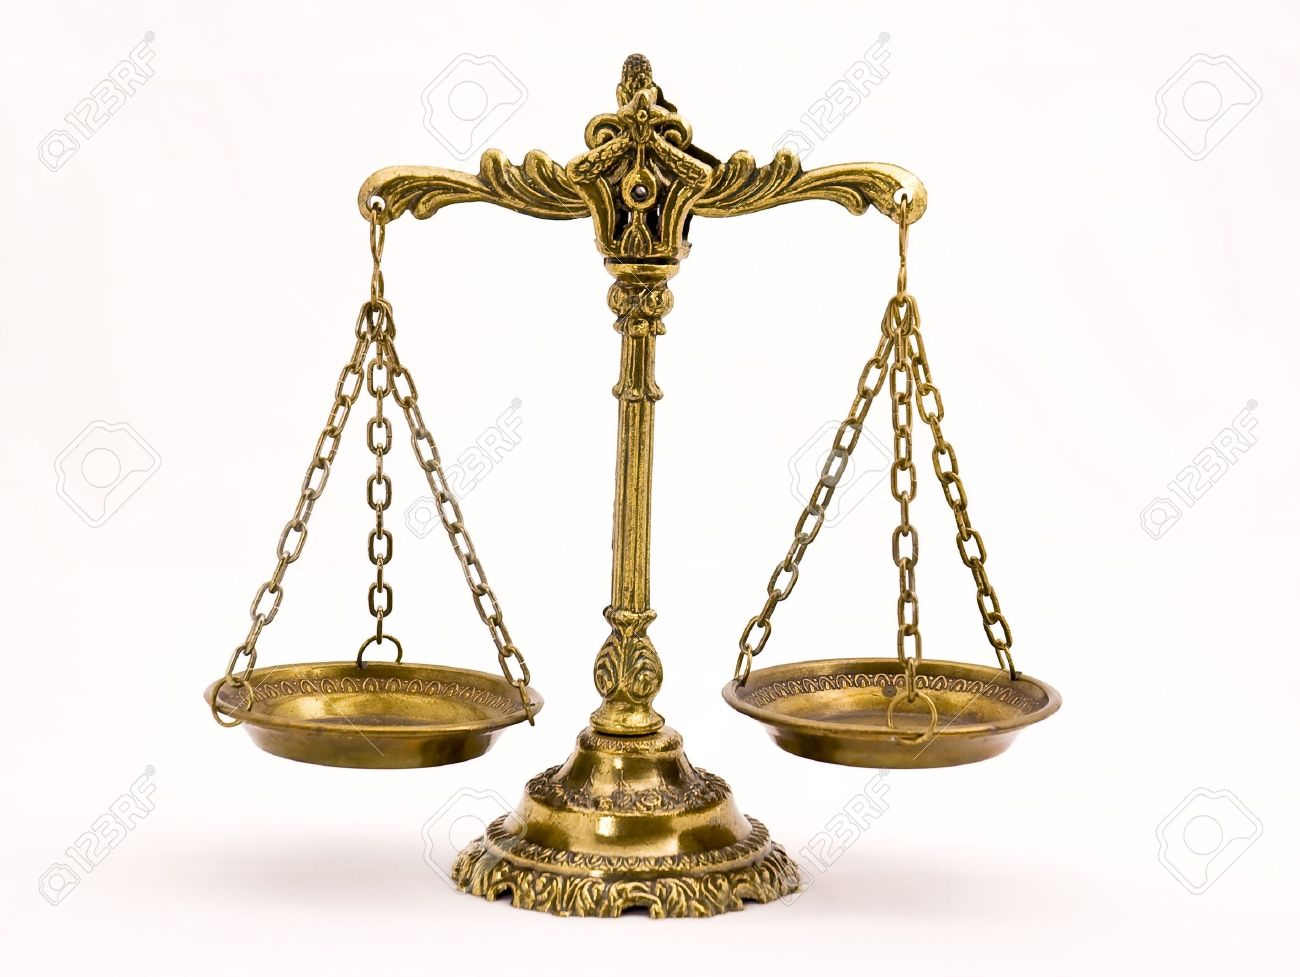 Balance Justice a photo of the scales of justice with a balance theme overlay stock